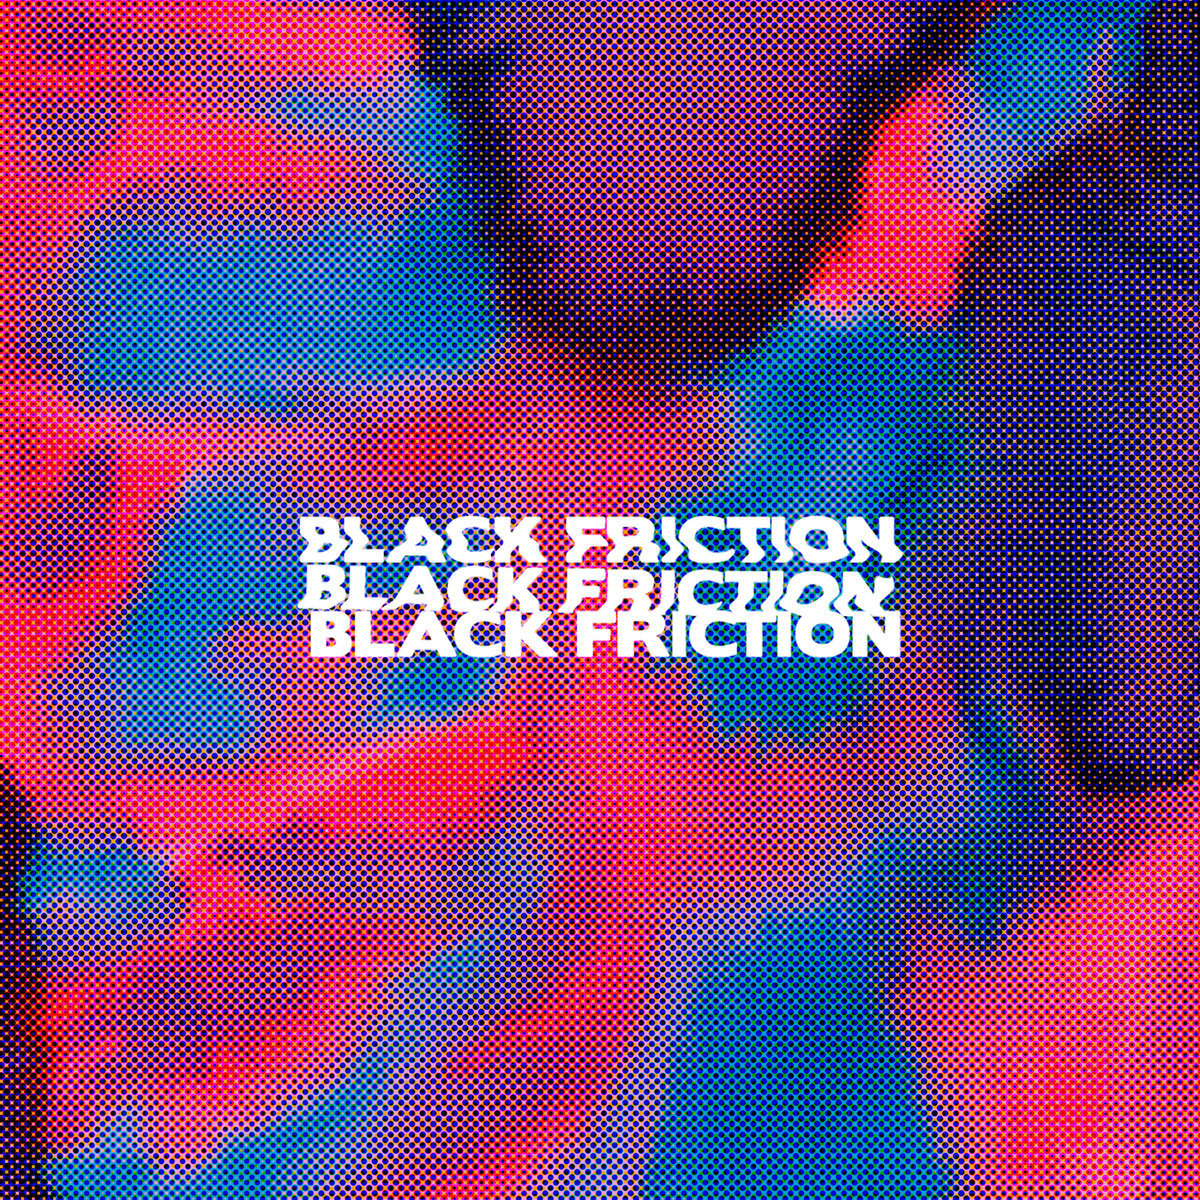 Black Friction | Introducing